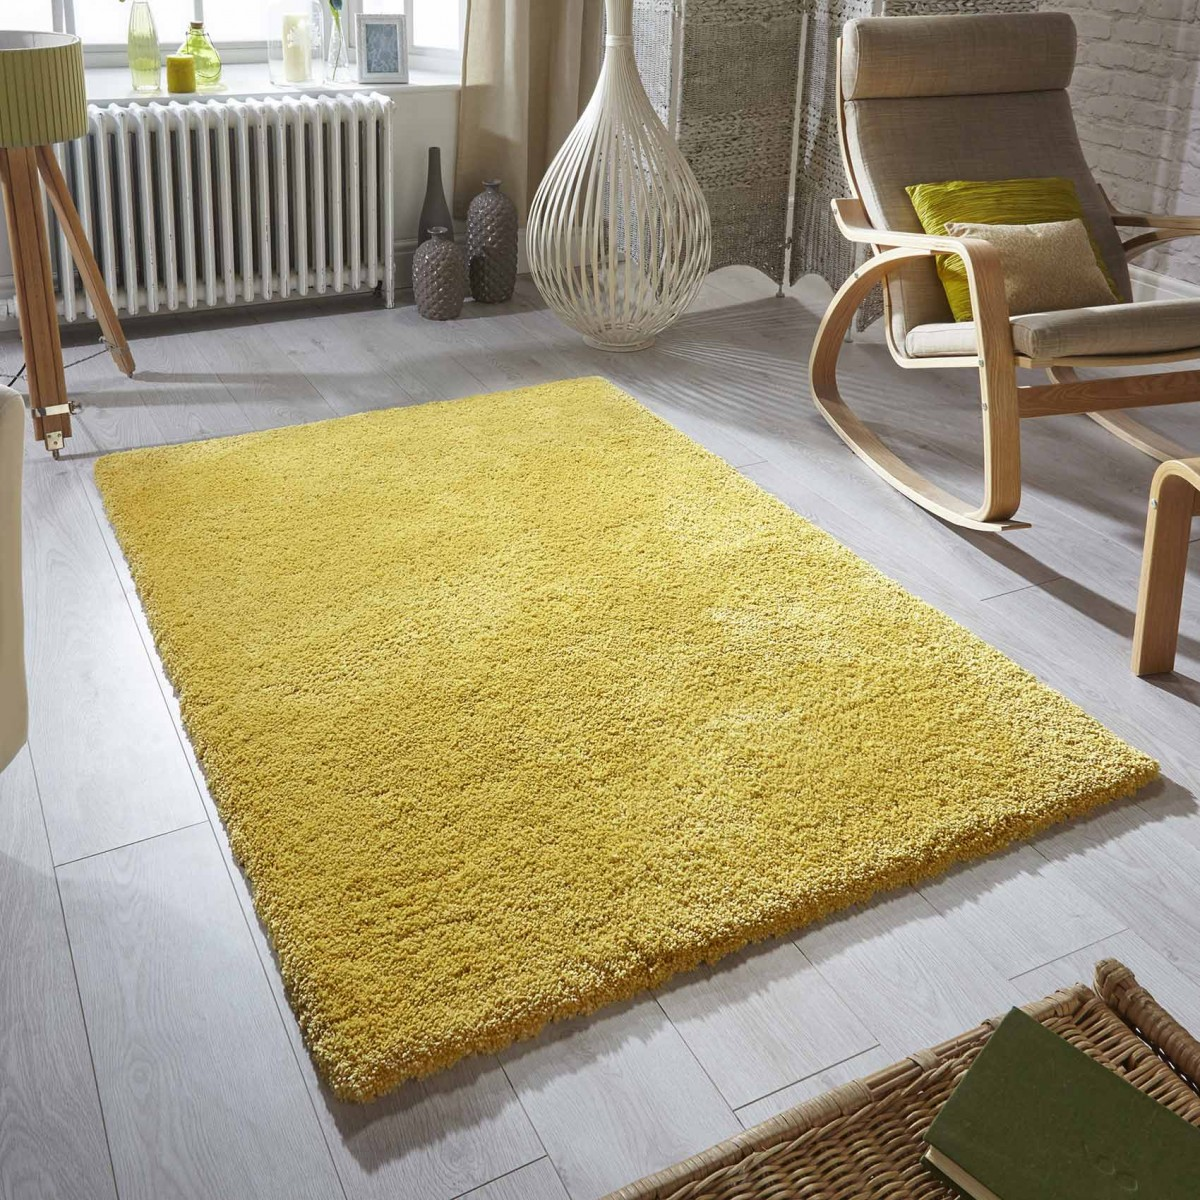 Supersoft Shaggy Mustard Yellow Rug